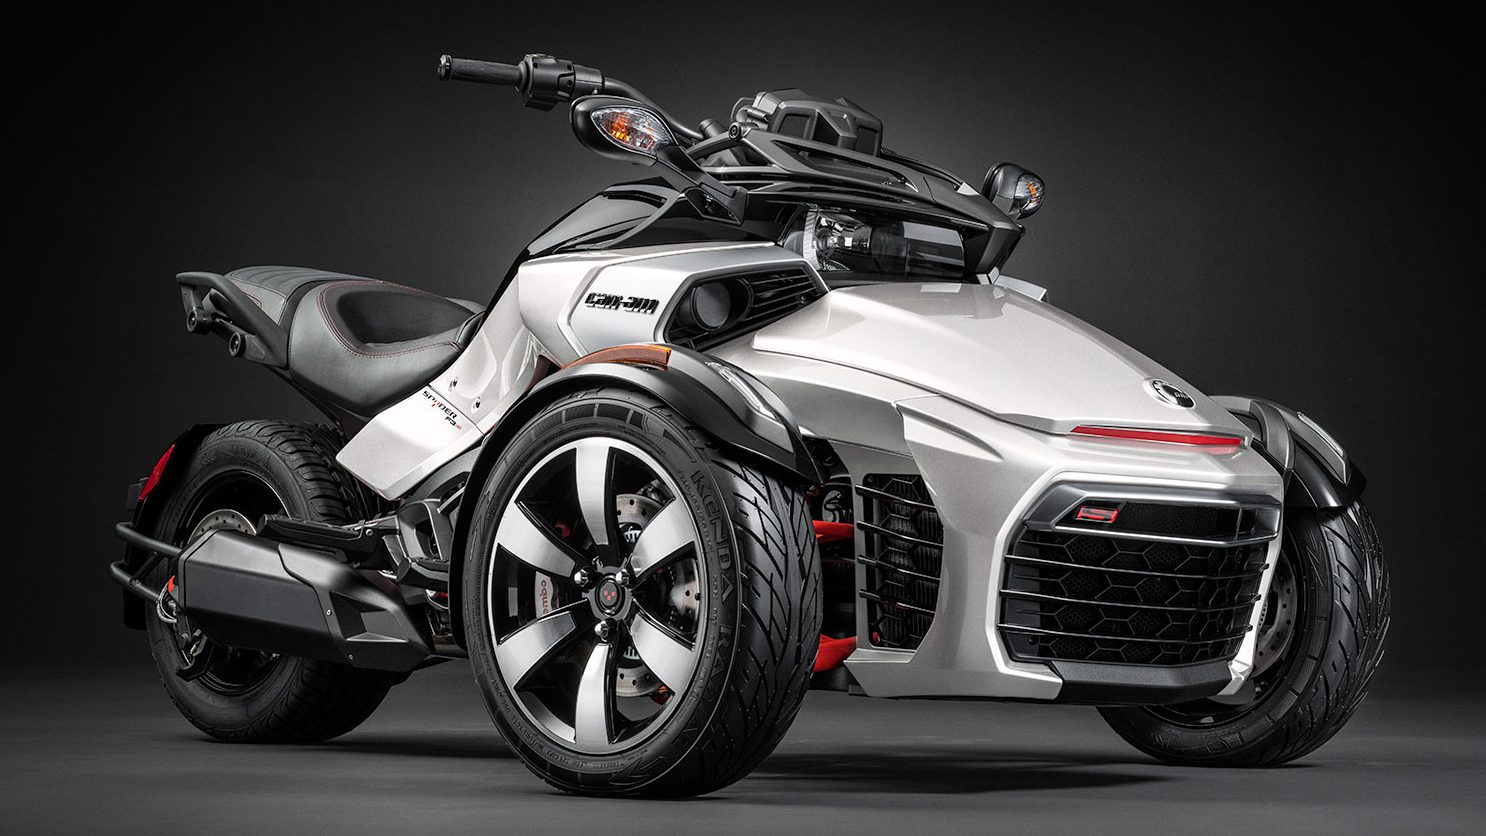 2016 Can-Am Spyder F3-S: from concept to reality | 1486 x 836 jpeg 181kB